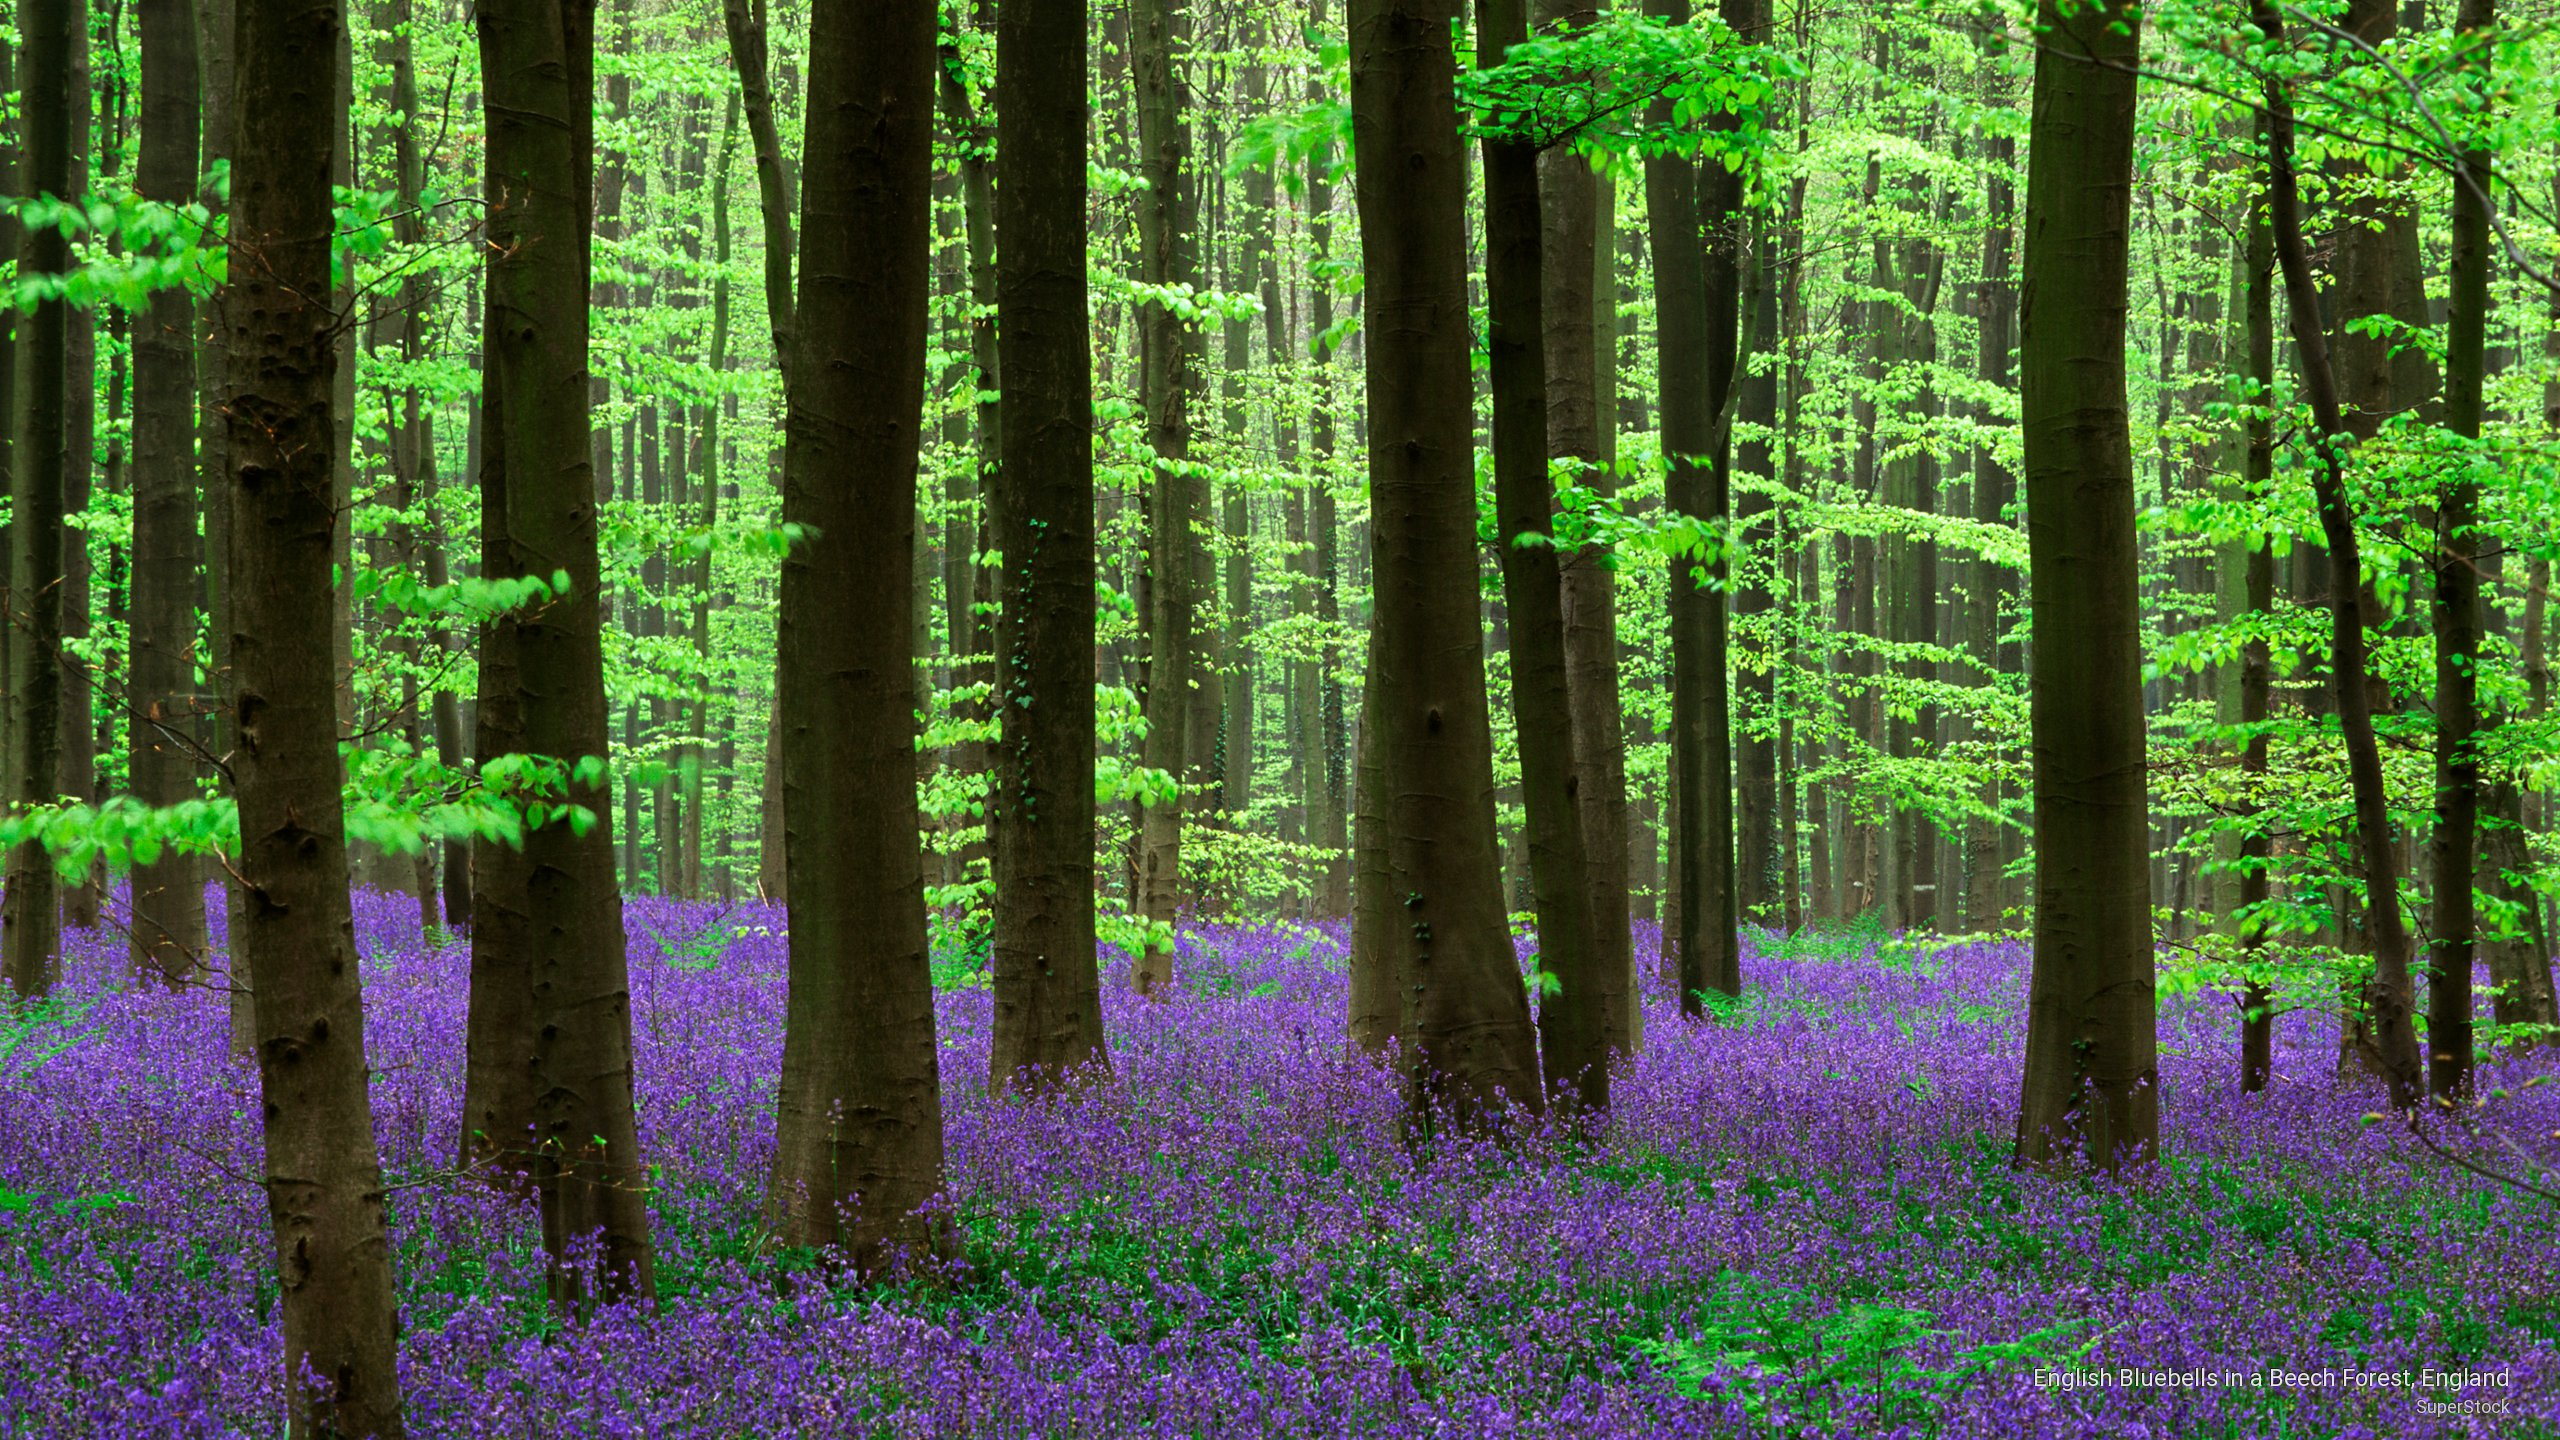 English Bluebells in a Beech Forest, England